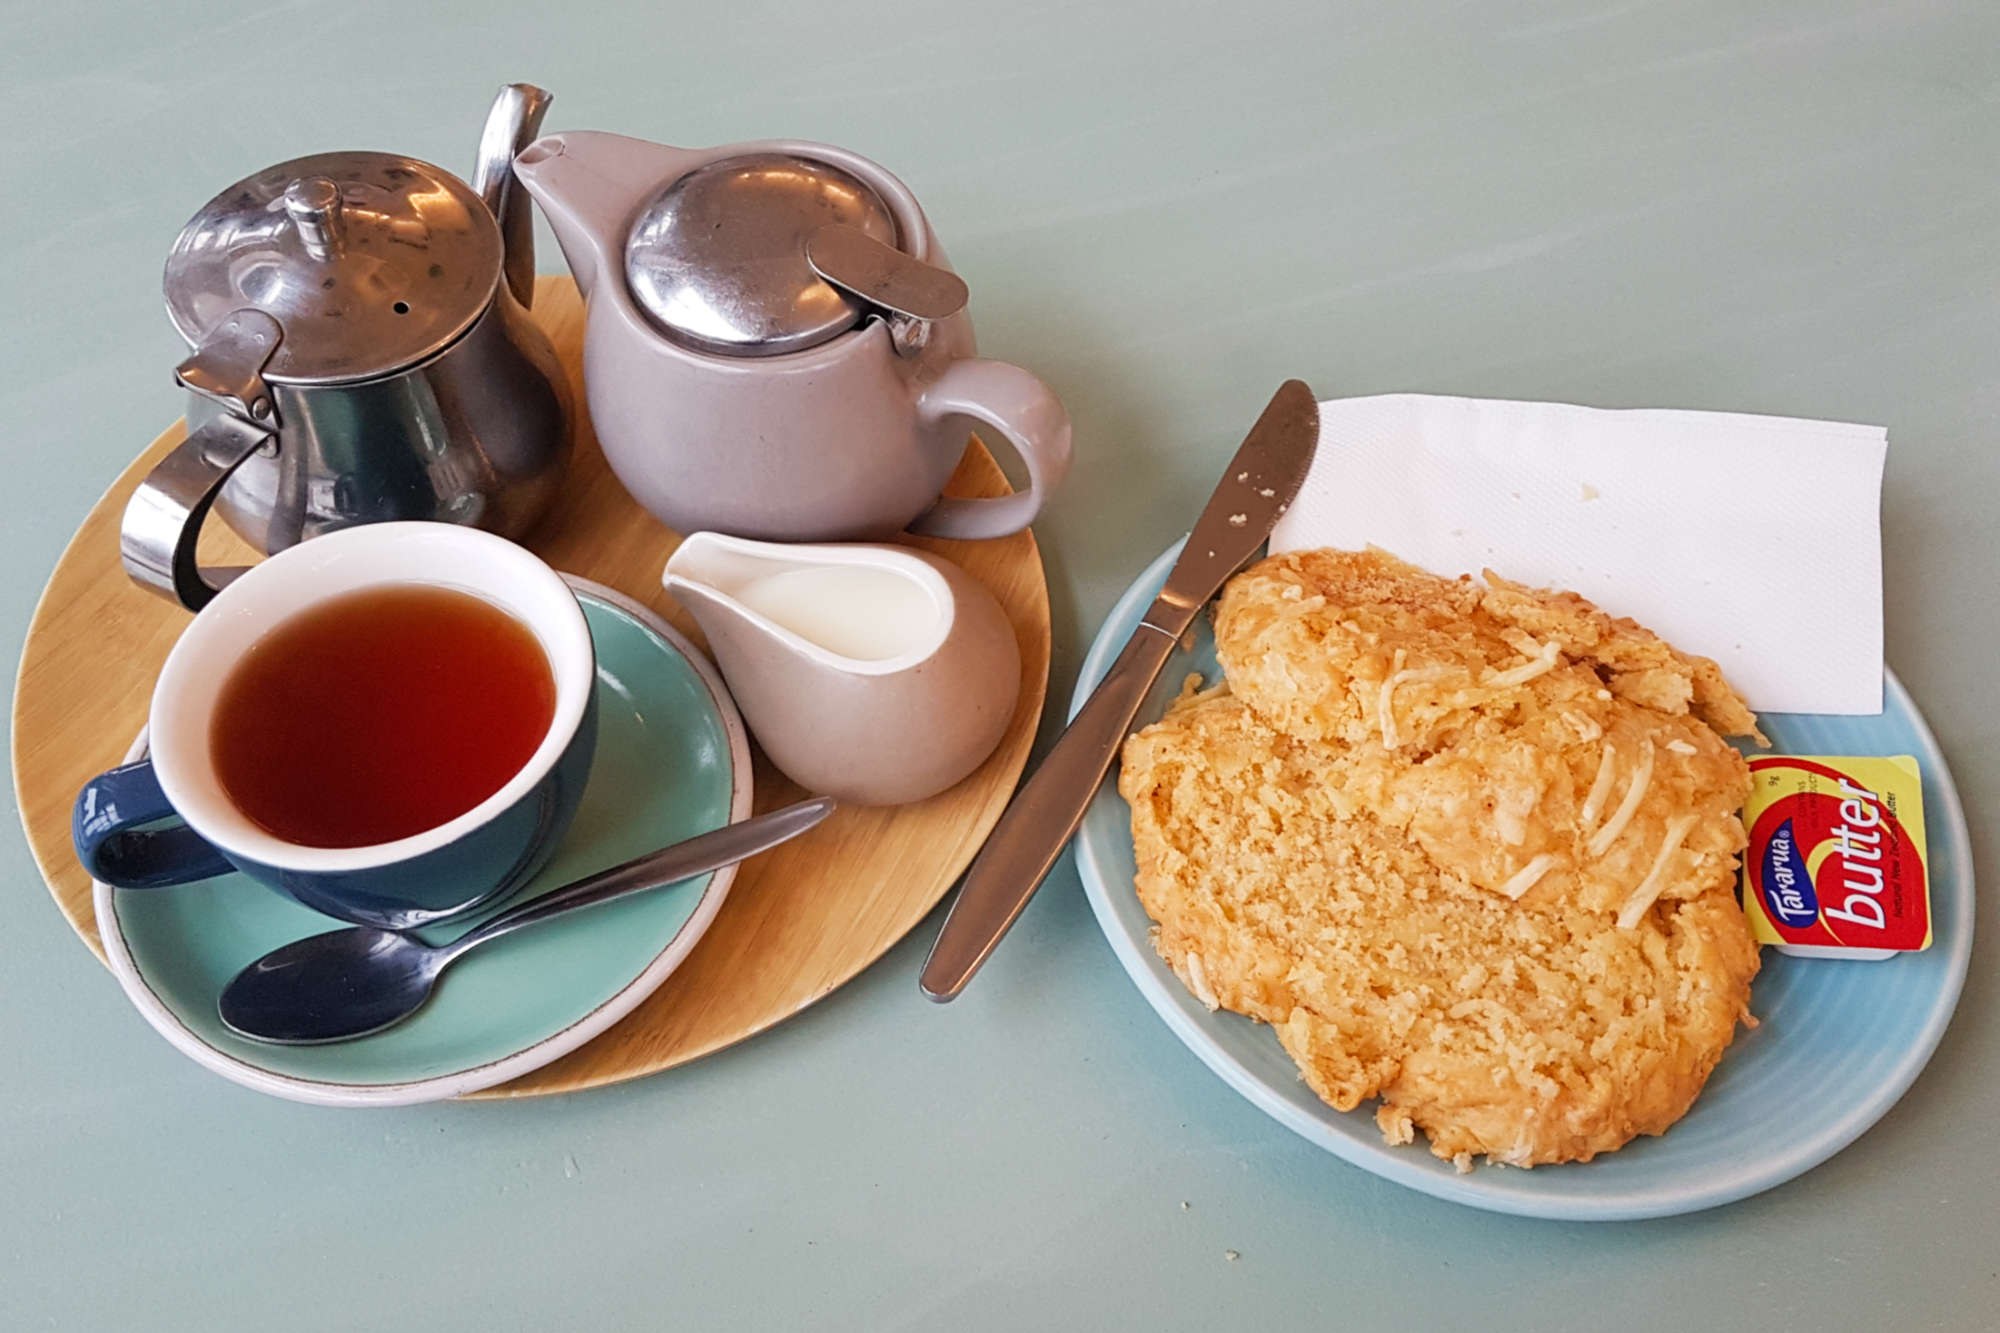 Cable Top cafe scone and tea